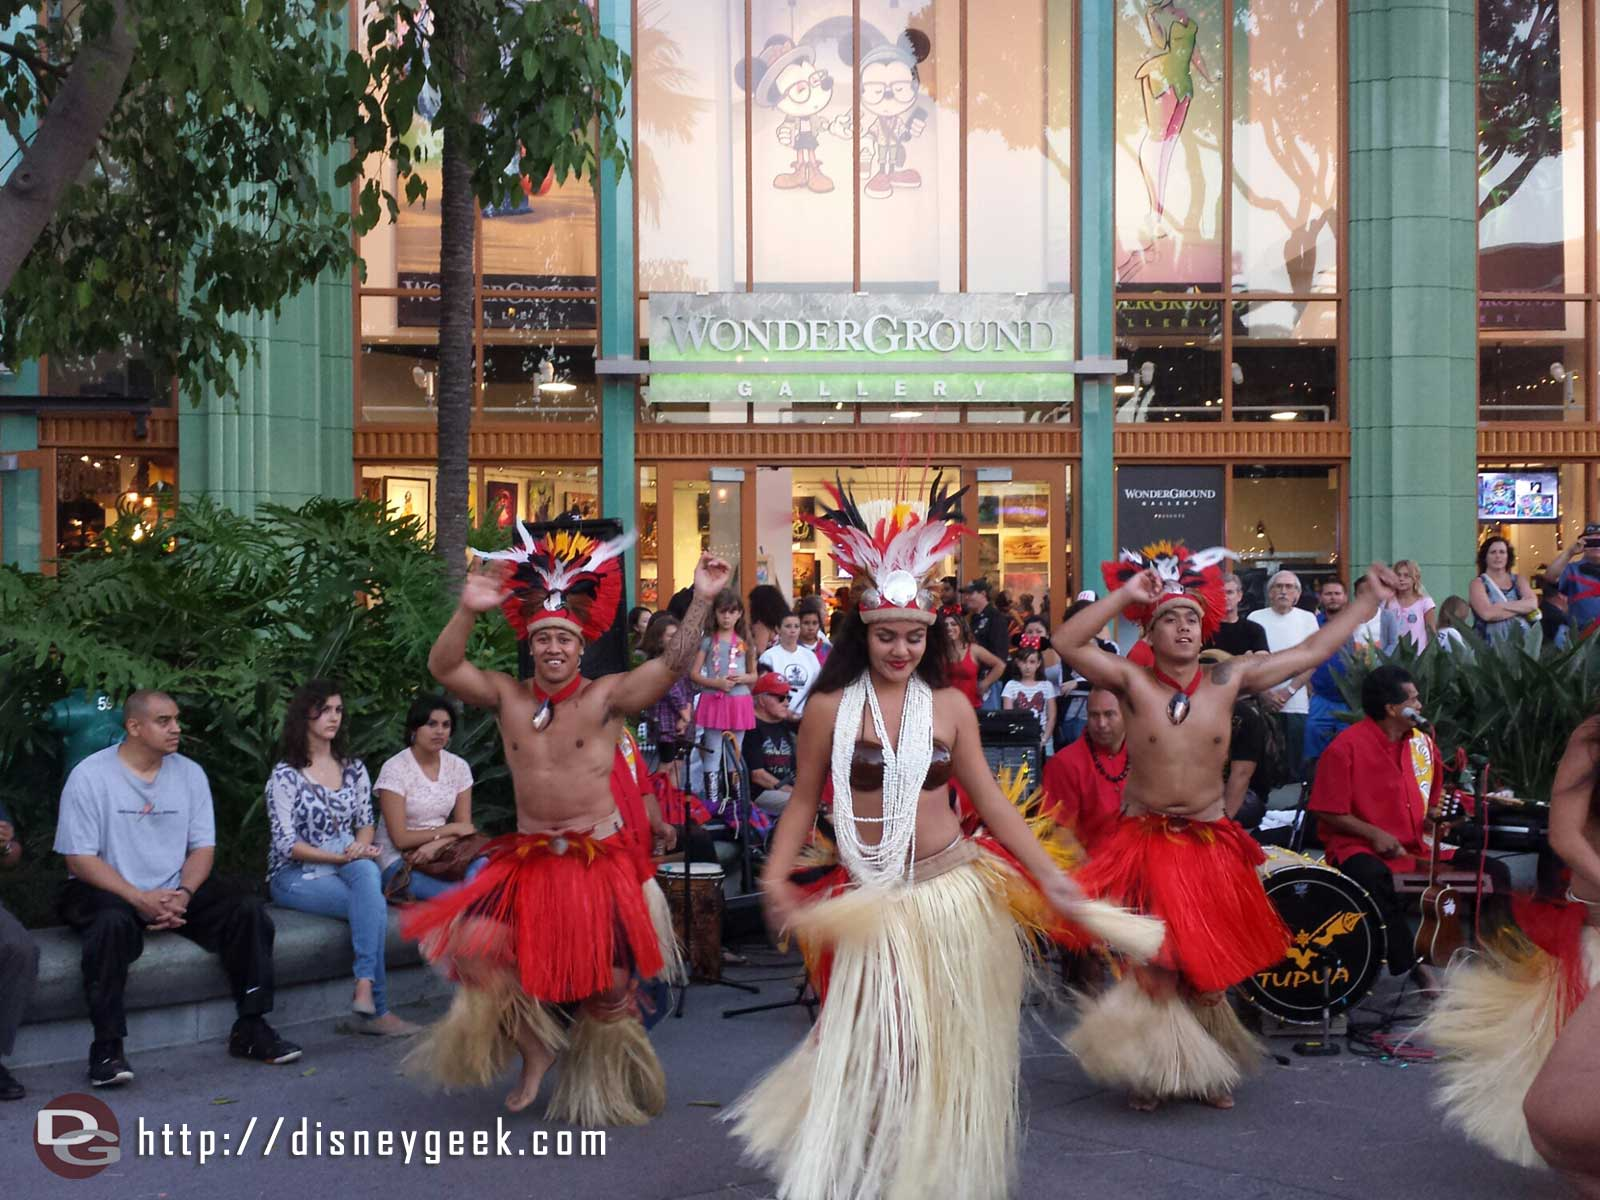 Stopped by Hawaiian Nights in Downtown Disney Tupua performing